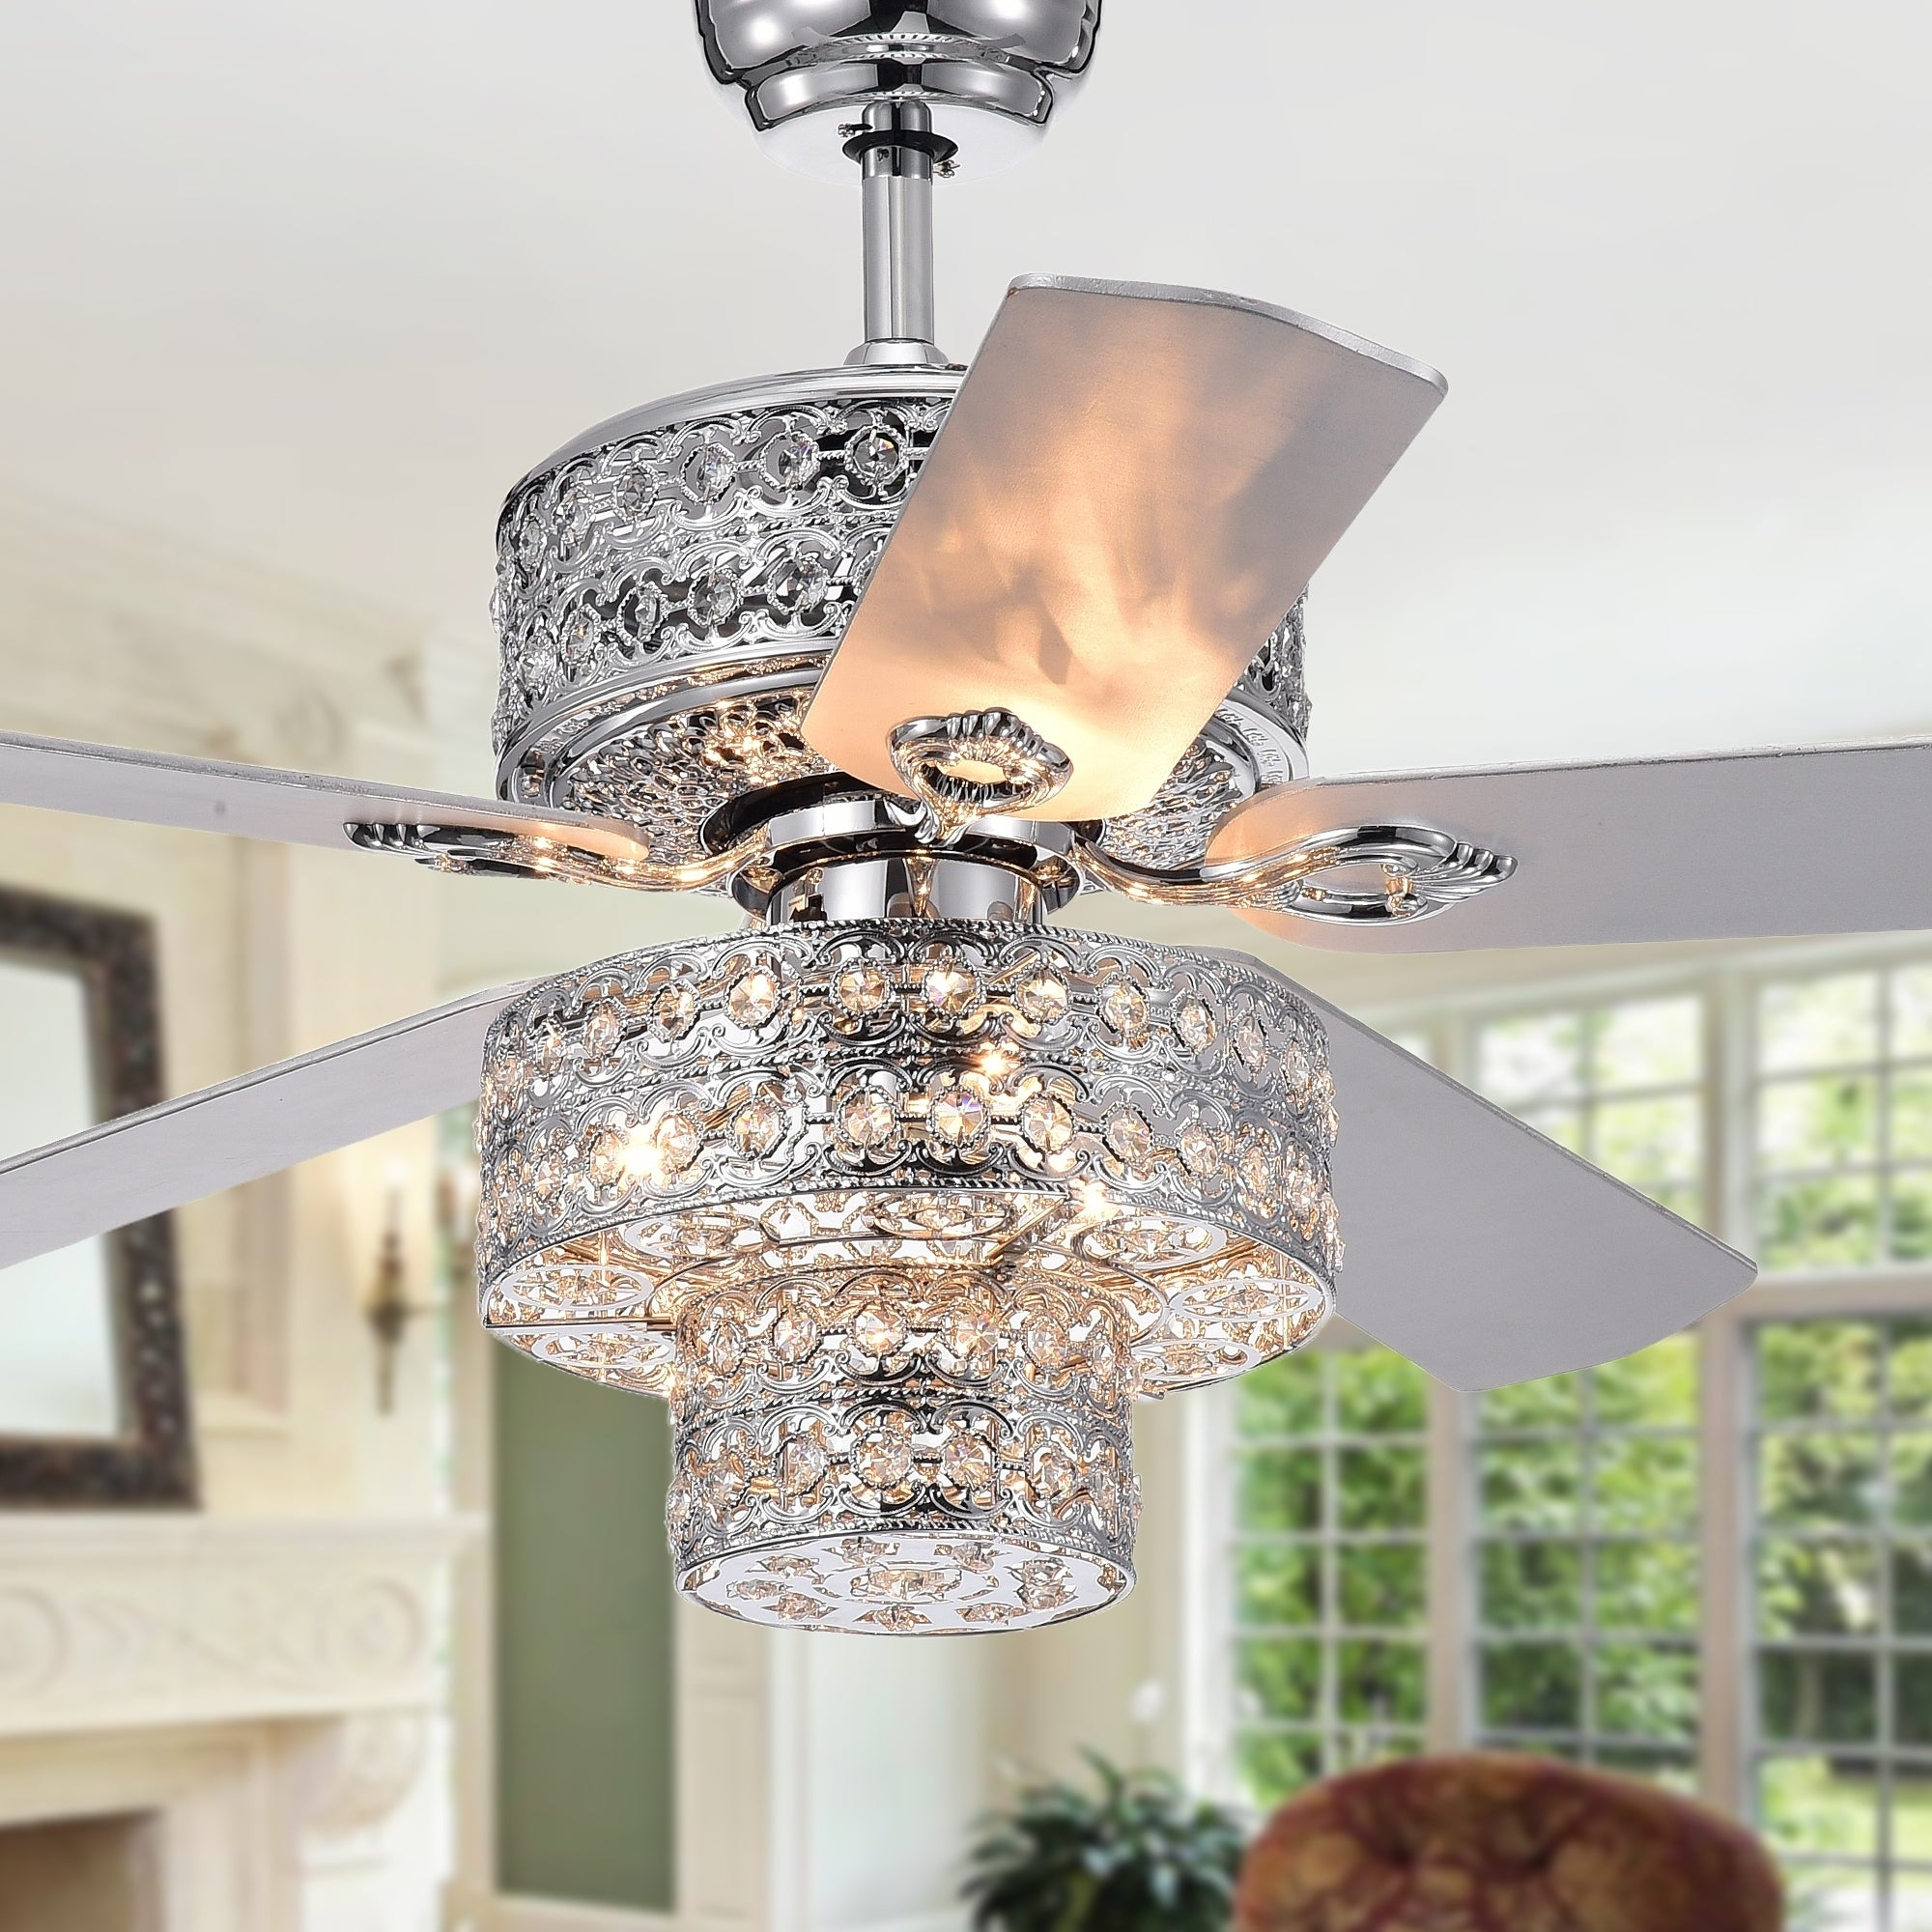 Empire Trois 5 Blade Silver Chandelier Ceiling Fan 52 Inch With Remote Control On Free Shipping Today 22988065